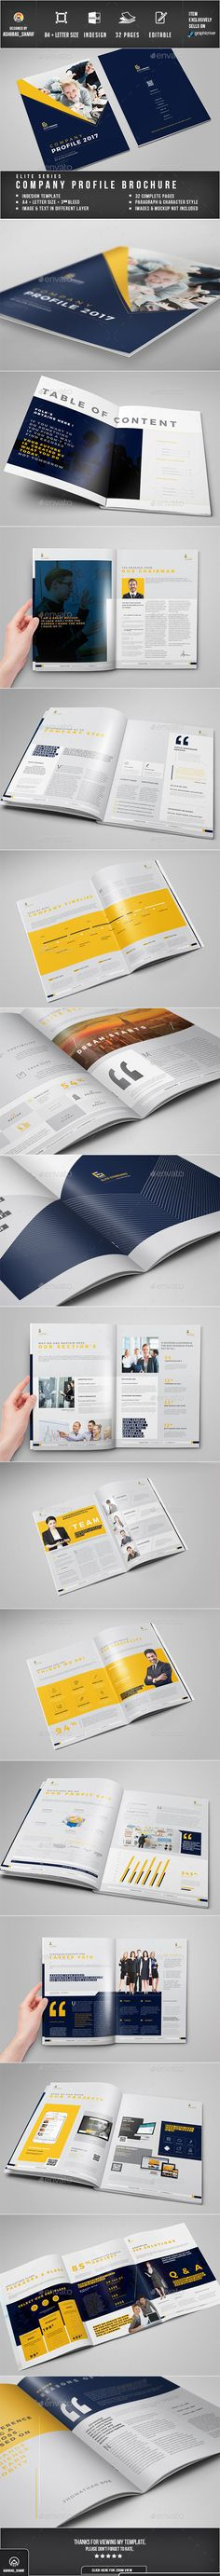 Brochure - Corporate Brochures Easy Customization and Editable A4 and US Letter Size with 3mm bleed 32 Complete pages with Master pages Paragraph Style, Character style included Images, text, Objects are Different Layers Design in 300 DPI Resolution In design files Auto numbering Option working file adobe cc Adobe In design CC,CS6,CS5,CS4 or Earlier software version supported